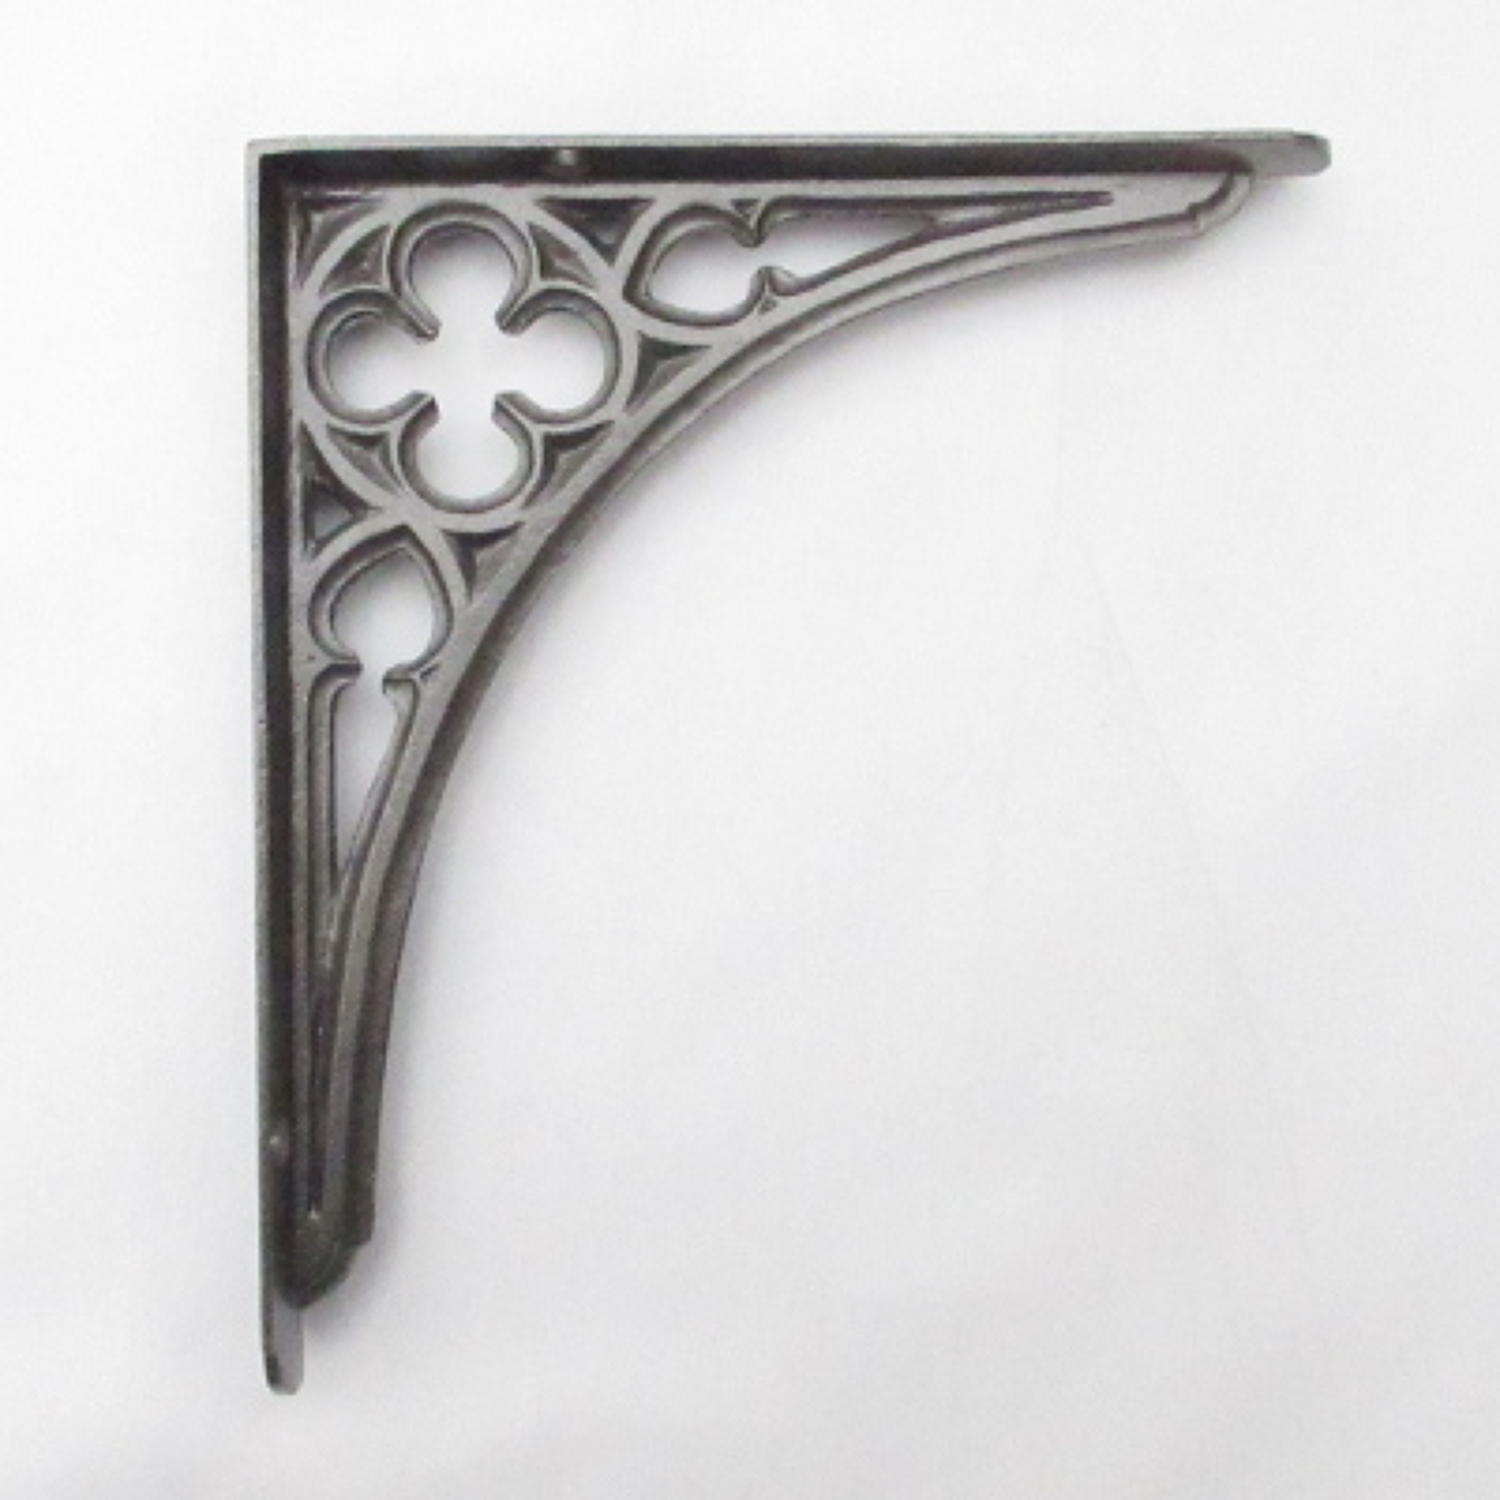 Small Cast Iron Gothic Shelf Bracket